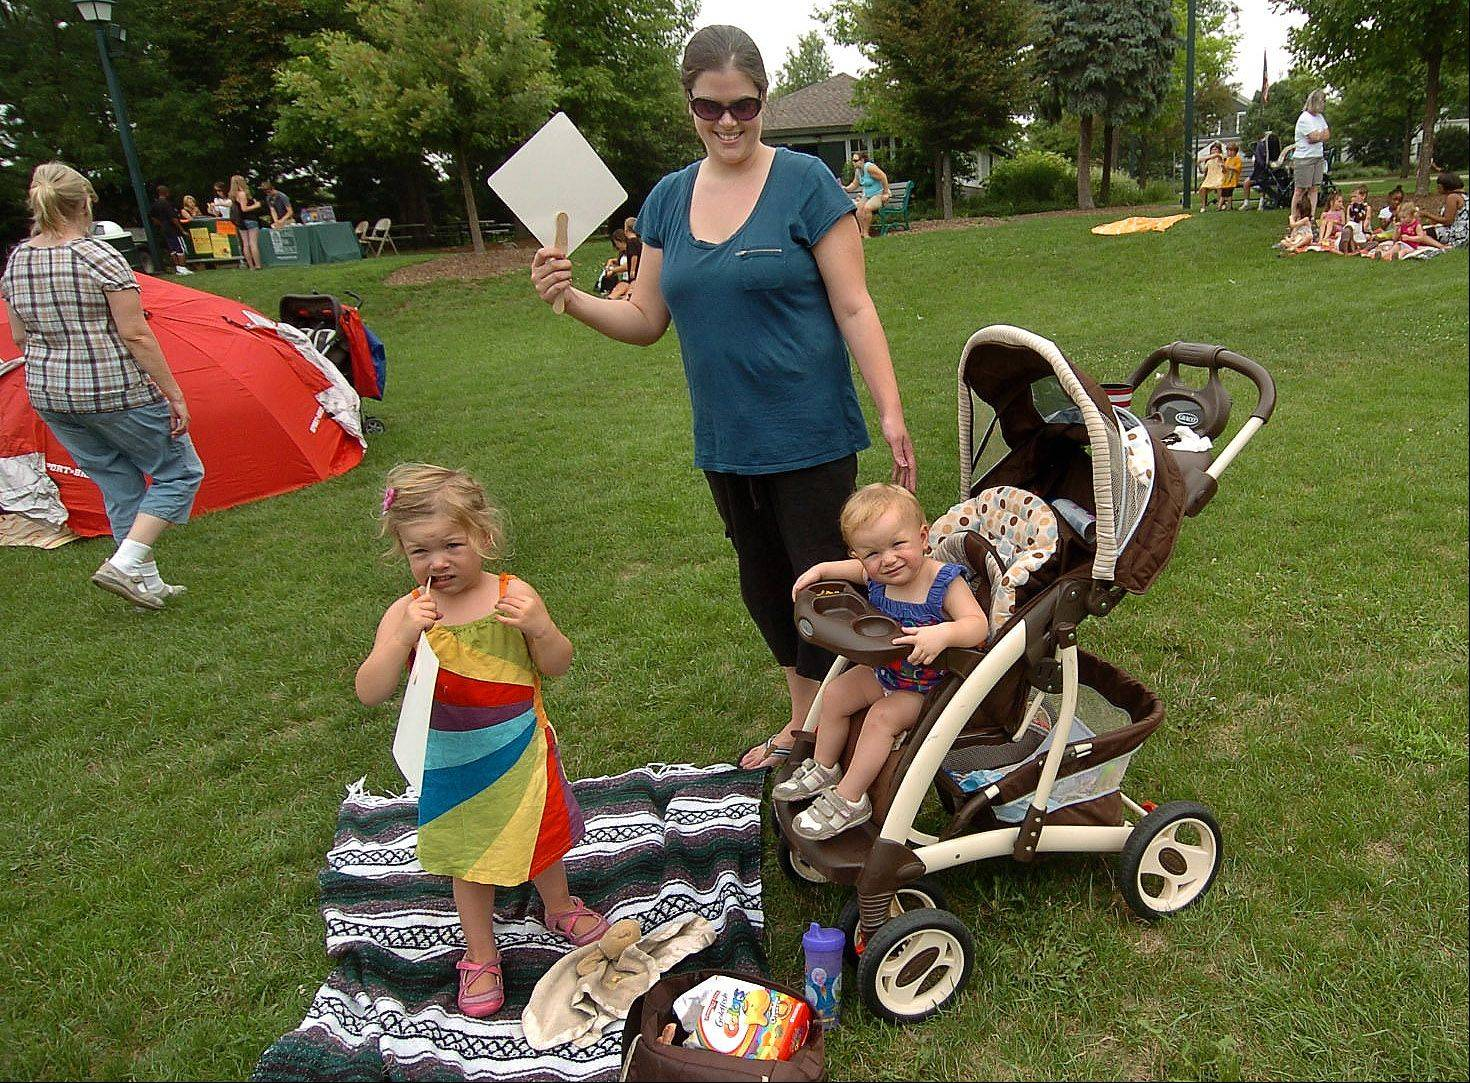 Melissa Smith of Antioch fans her kids, Lilly, left, and Elsie, from the heat while watching Karen Jordan perform at Viking Park for the final Children's Concerts show sponsored by the Gurnee Park District.